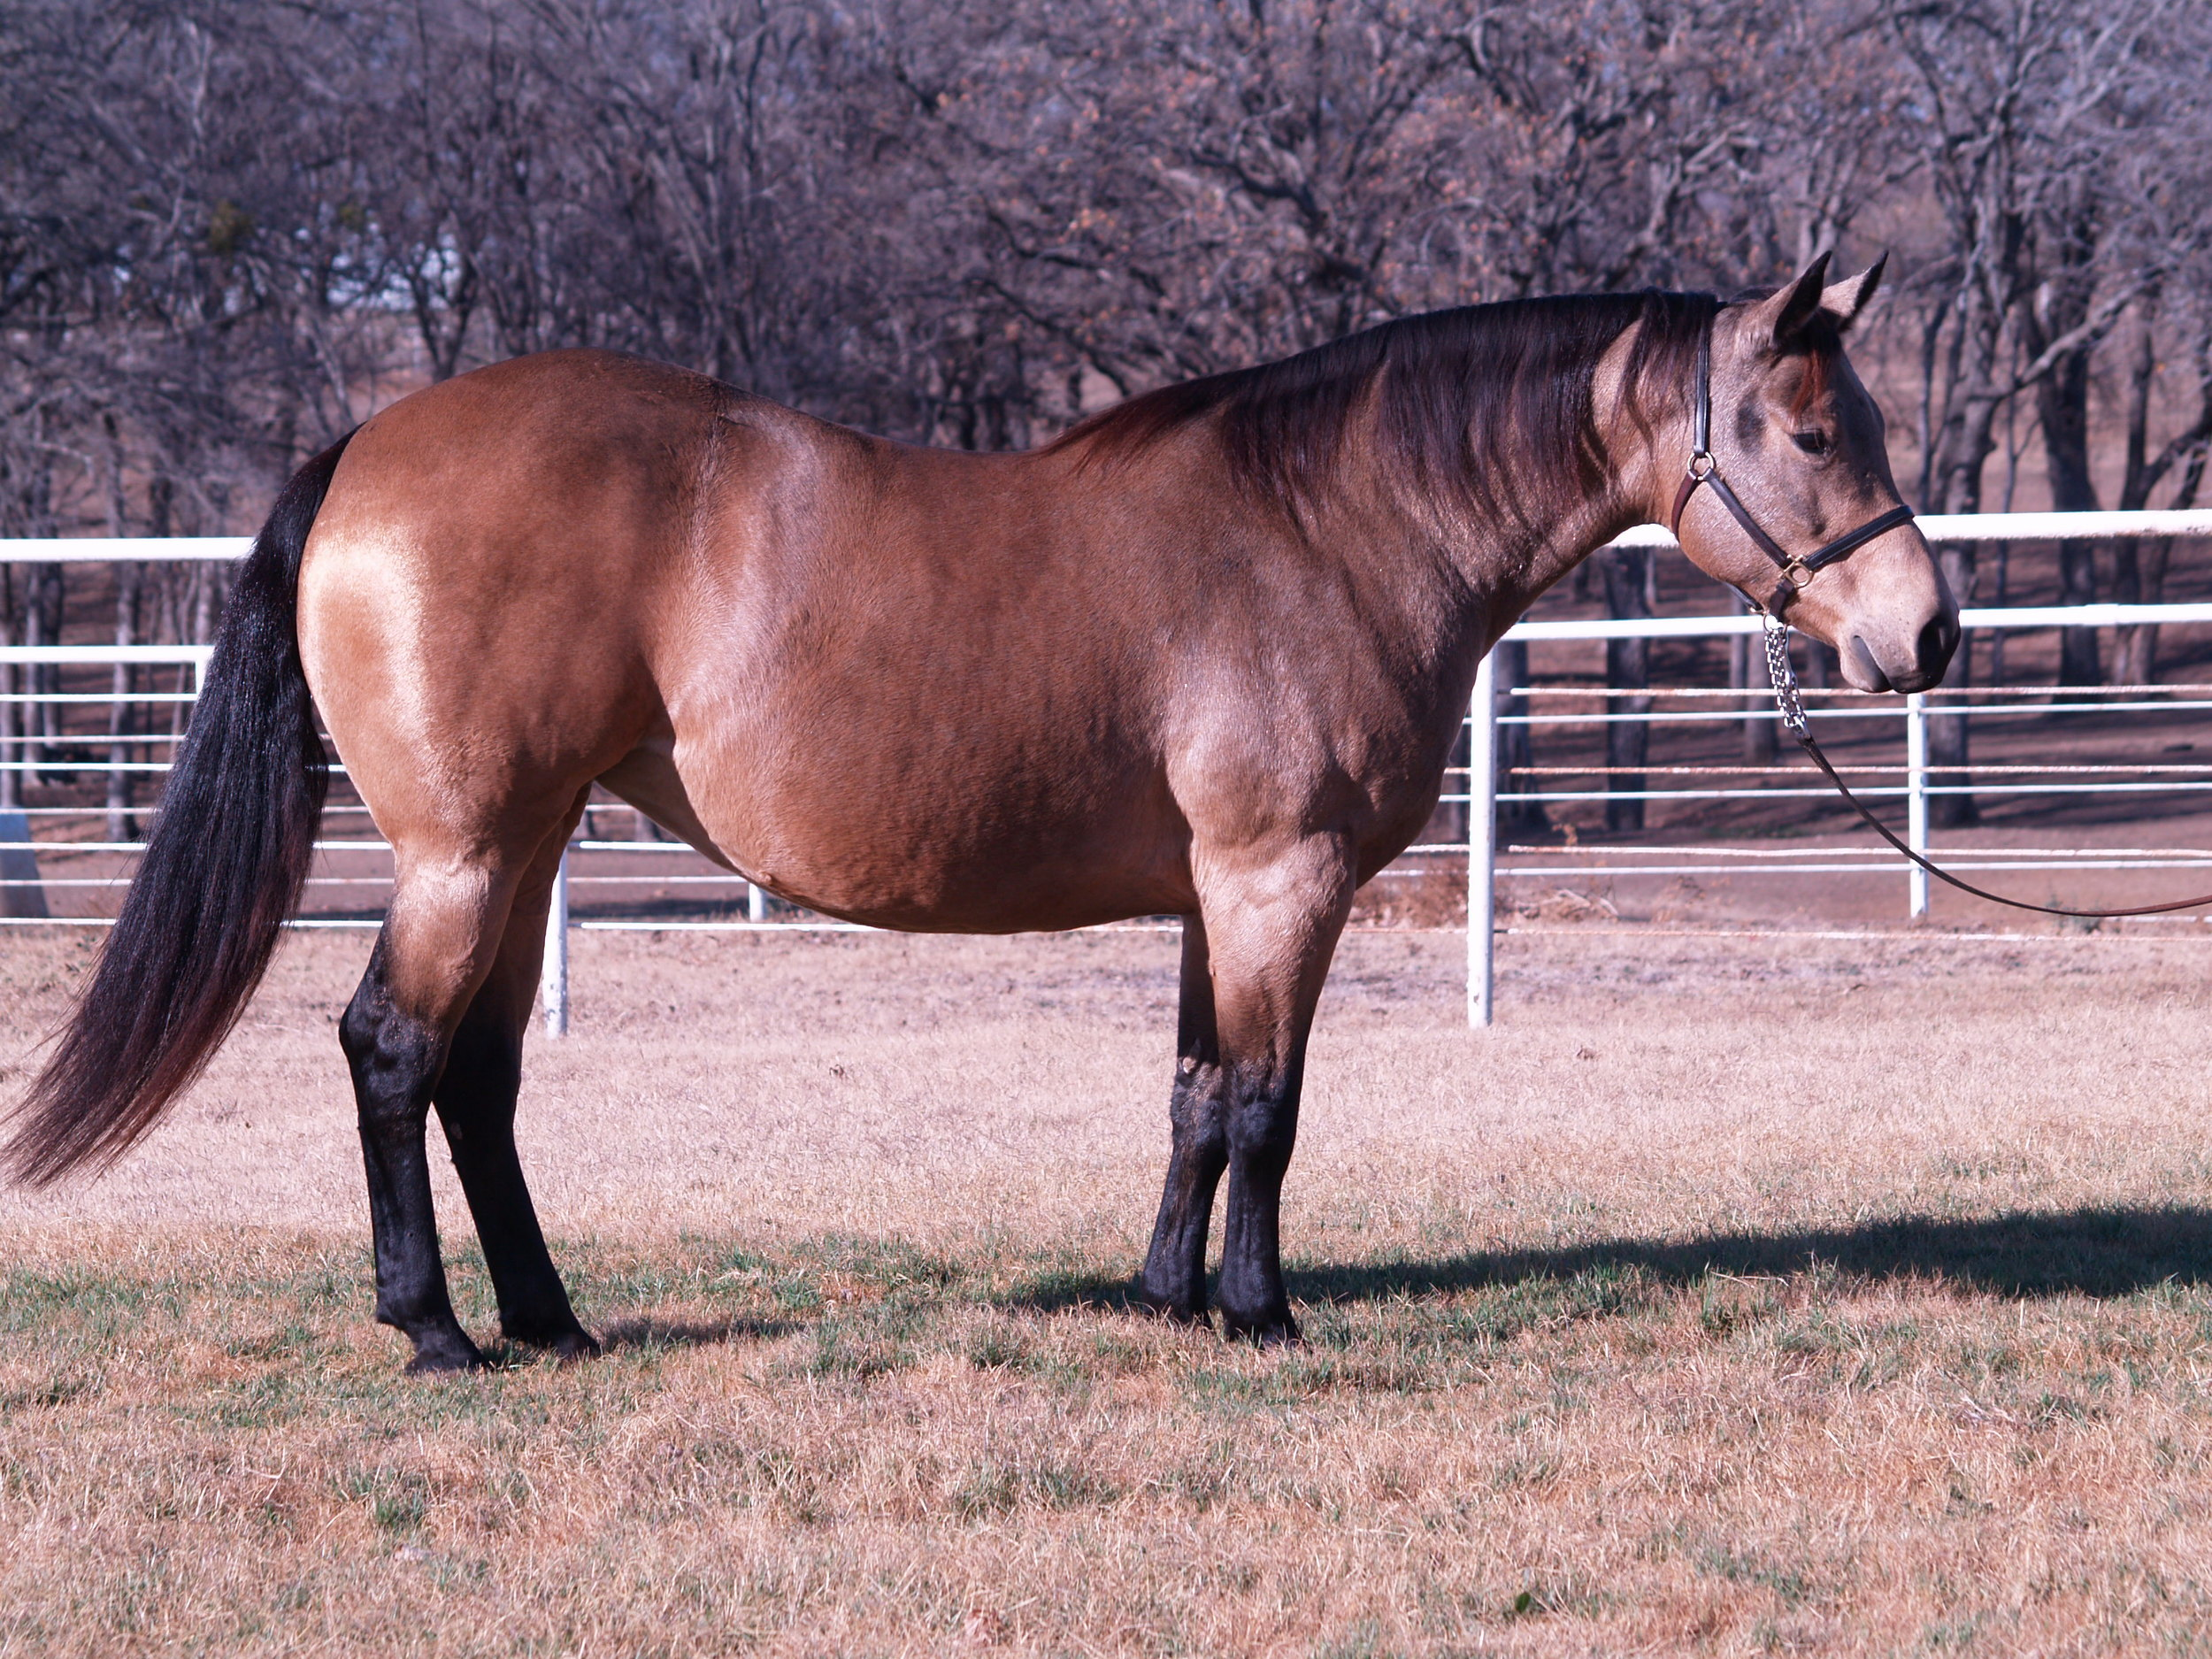 Custom Made Dunit  is a 2005 buckskin mare by Hollywood Dun It and out of Custom Red Berry by Custom Crome. She is an NRHA money earner and  producer of   $281,313+,  including the 2012 Non Pro Futurity Co-Champion, Customized Gunner and the 2015 NRBC Non Pro Co-Reserve Champion Custom Made Gun.